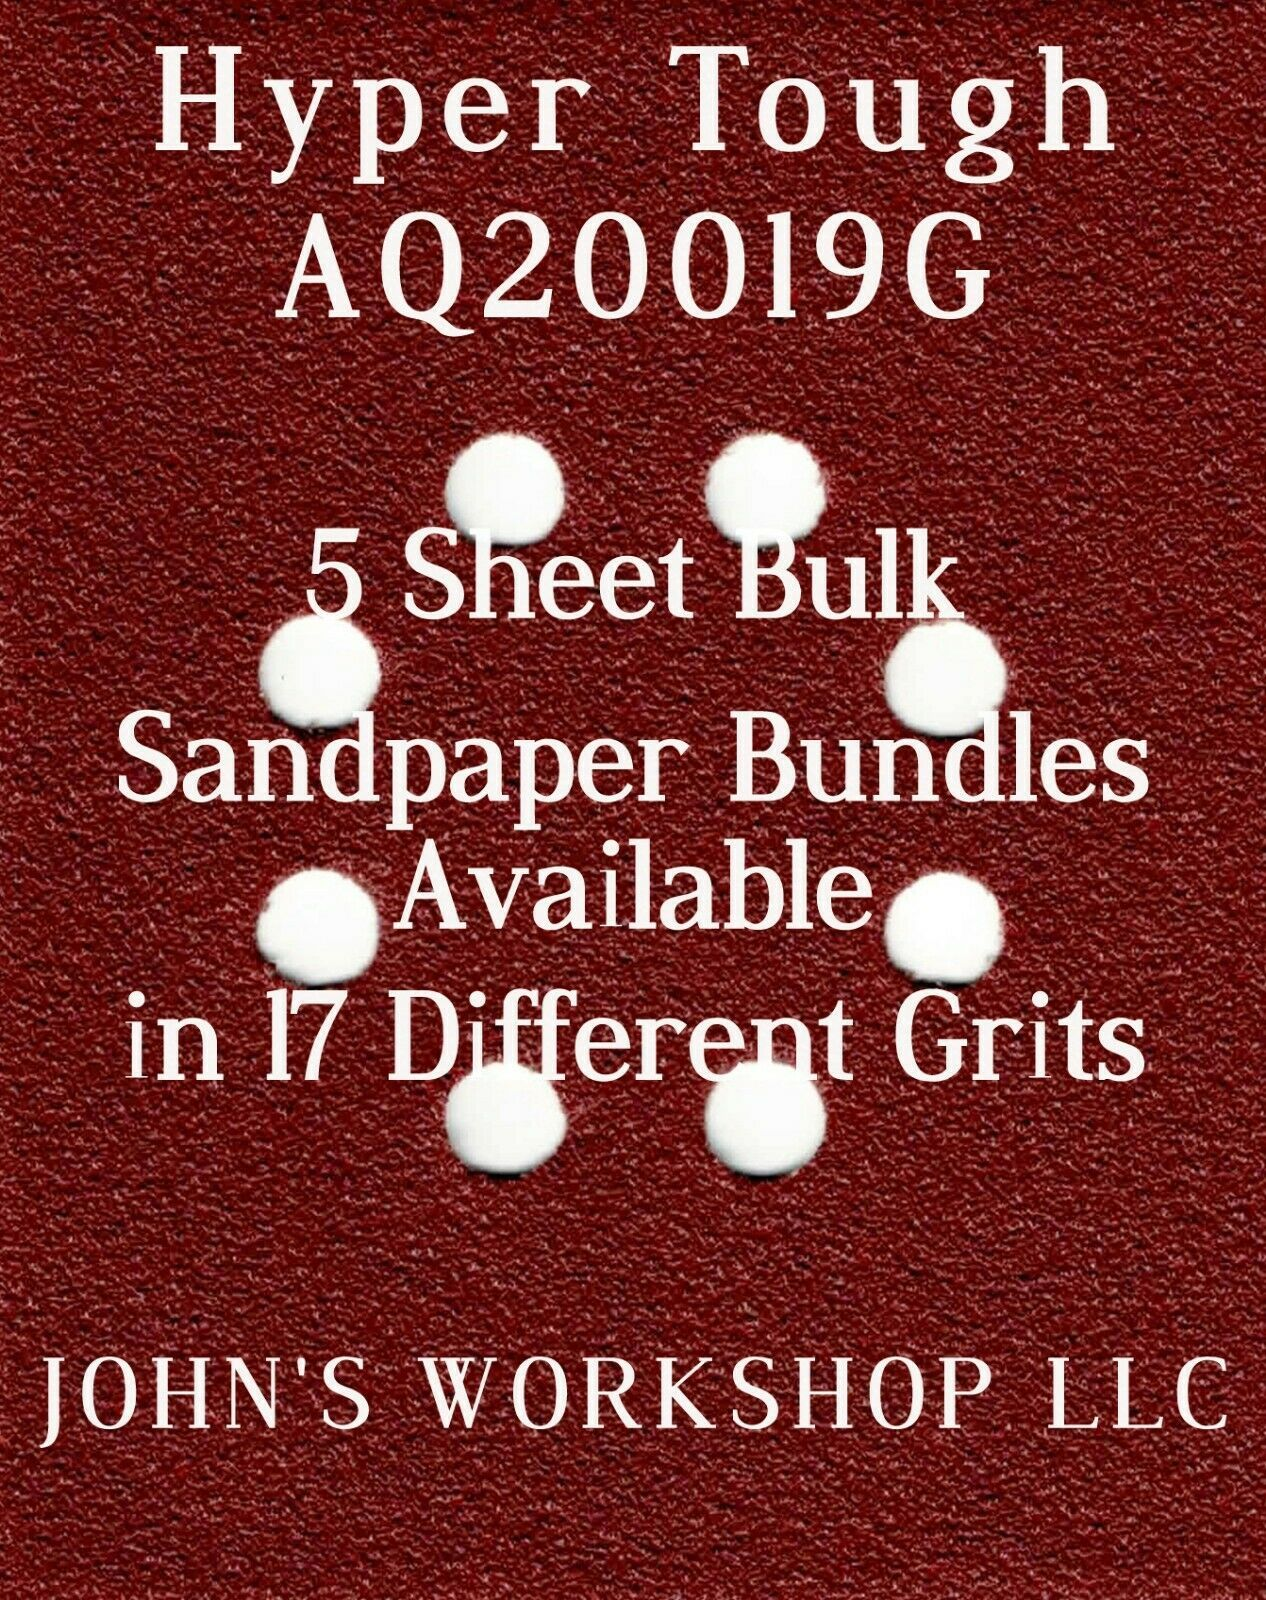 Primary image for Hyper Tough AQ20019G - 1/4 Sheet - 17 Grits - No-Slip - 5 Sandpaper Bulk Bundles